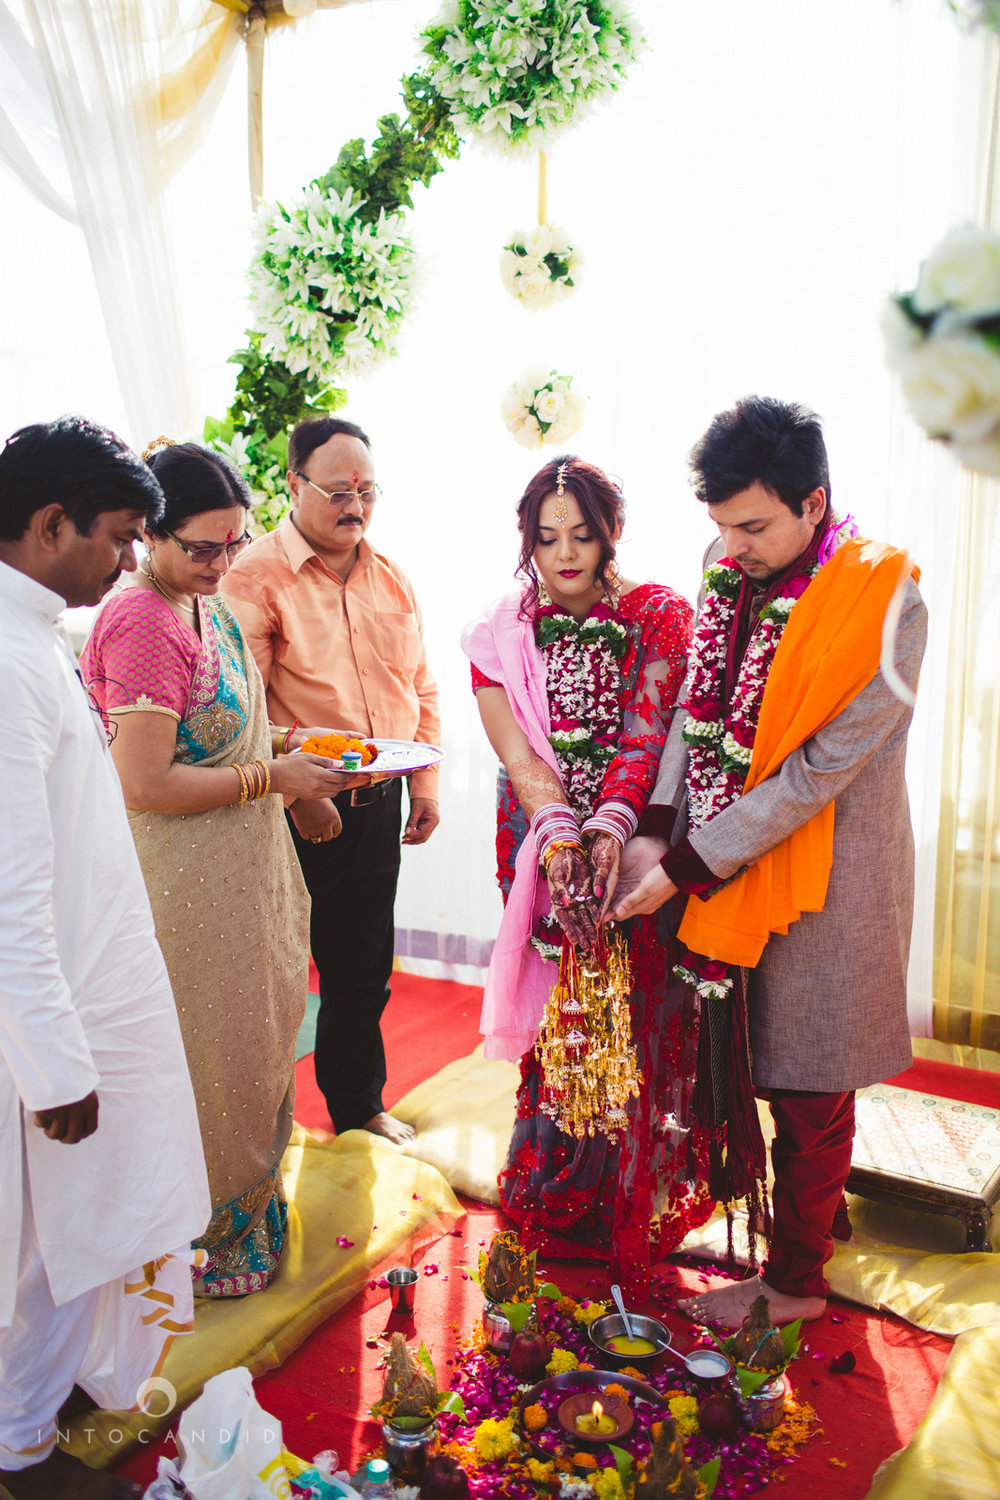 juhuhotel-mumbai-hindu-wedding-photography-intocandid-photography-nj-25.jpg